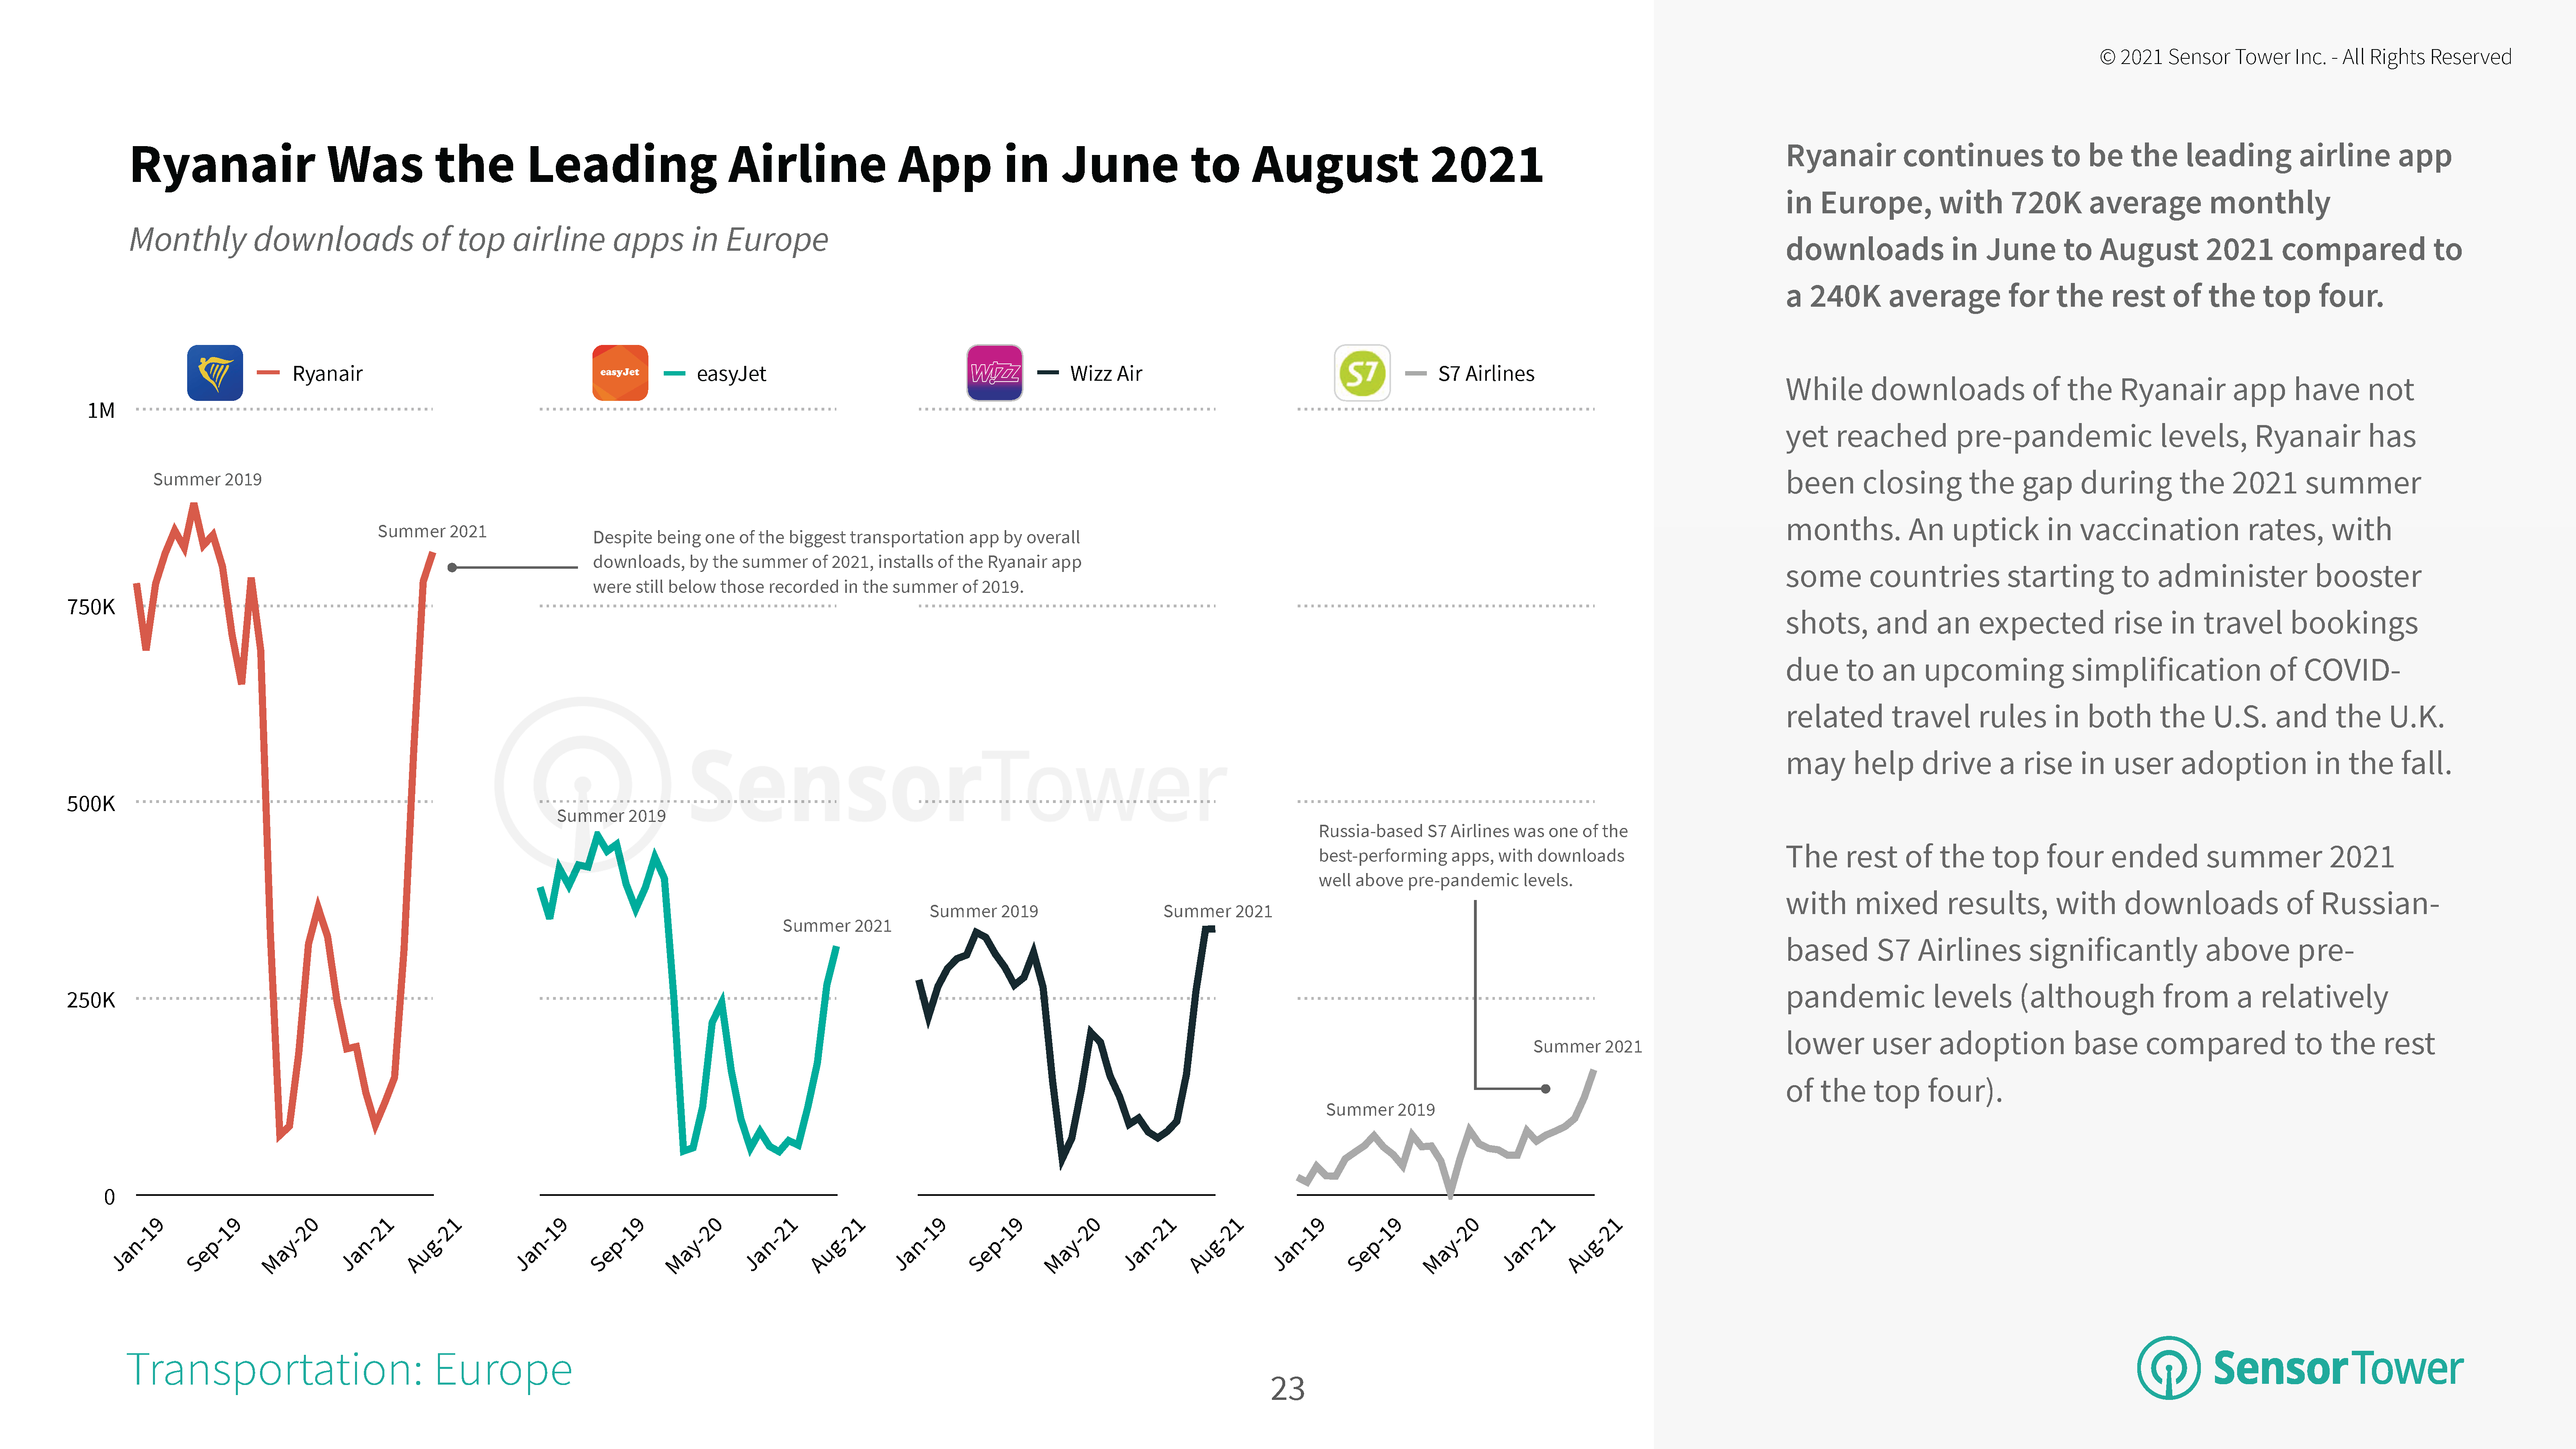 Ryanair Was the Leading Airline App in June to August 2021